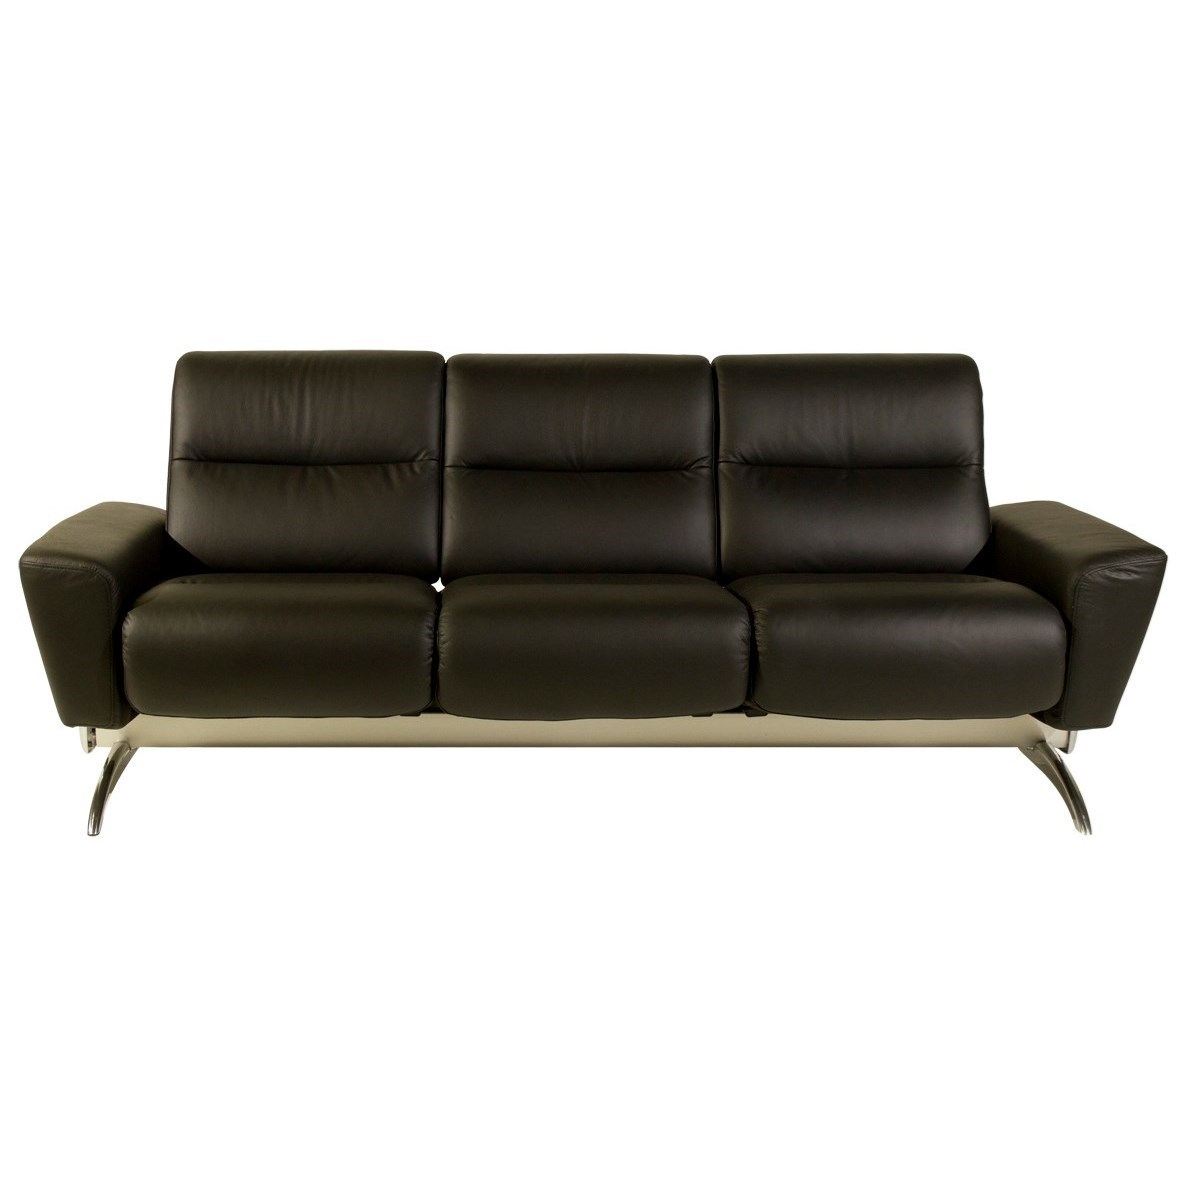 Stresless Stressless Sofa Air